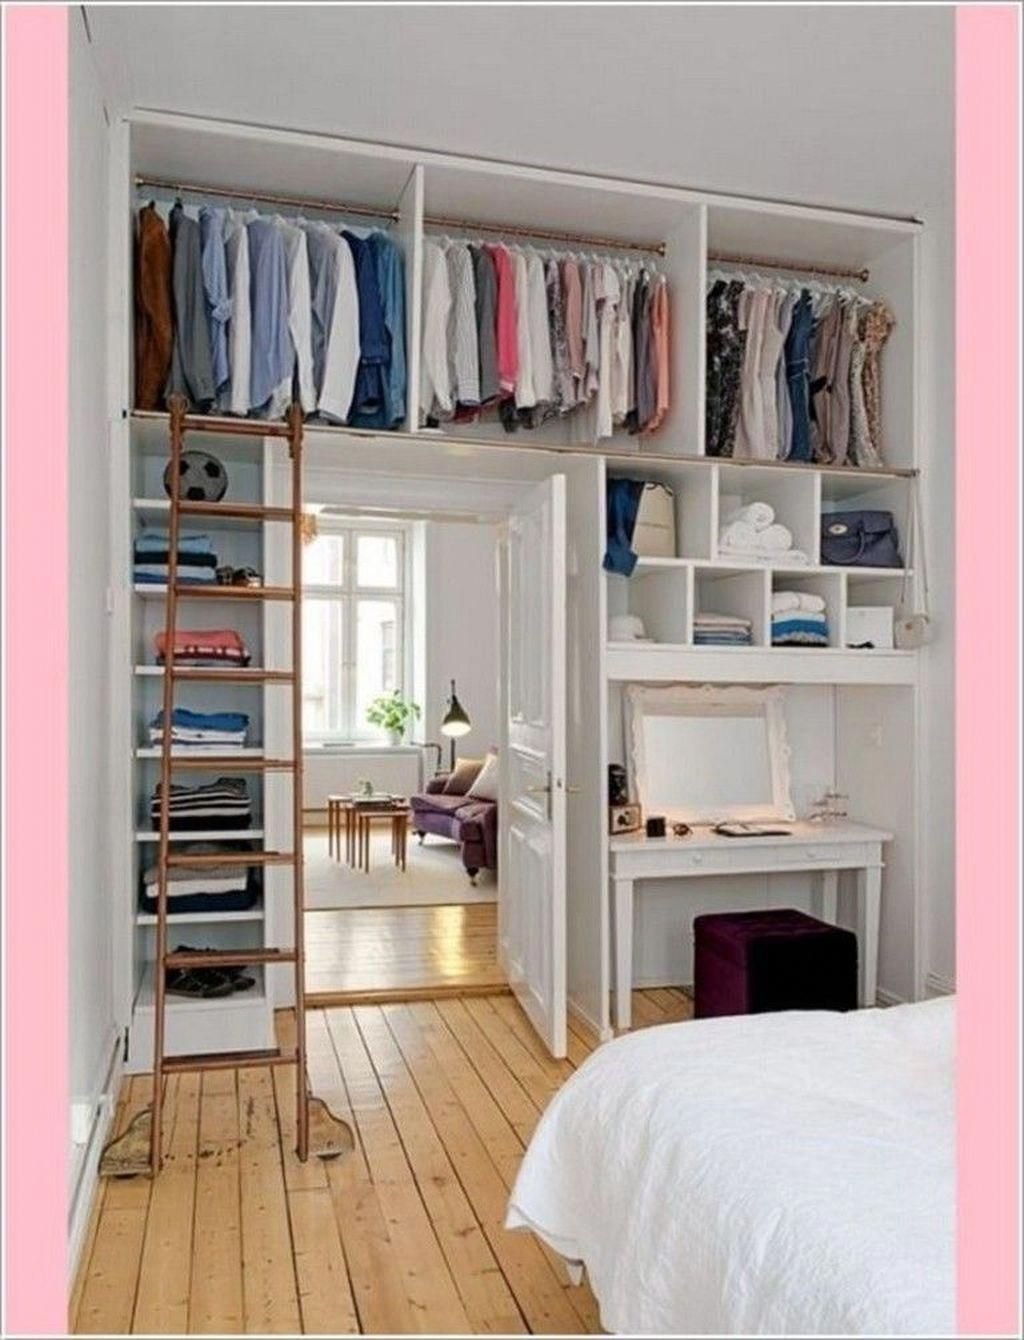 Mirror For Room 75 Ideas And How To Choose The Ideal In 2020 Small Bedroom Organization Small Bedroom Designs Small Bedroom